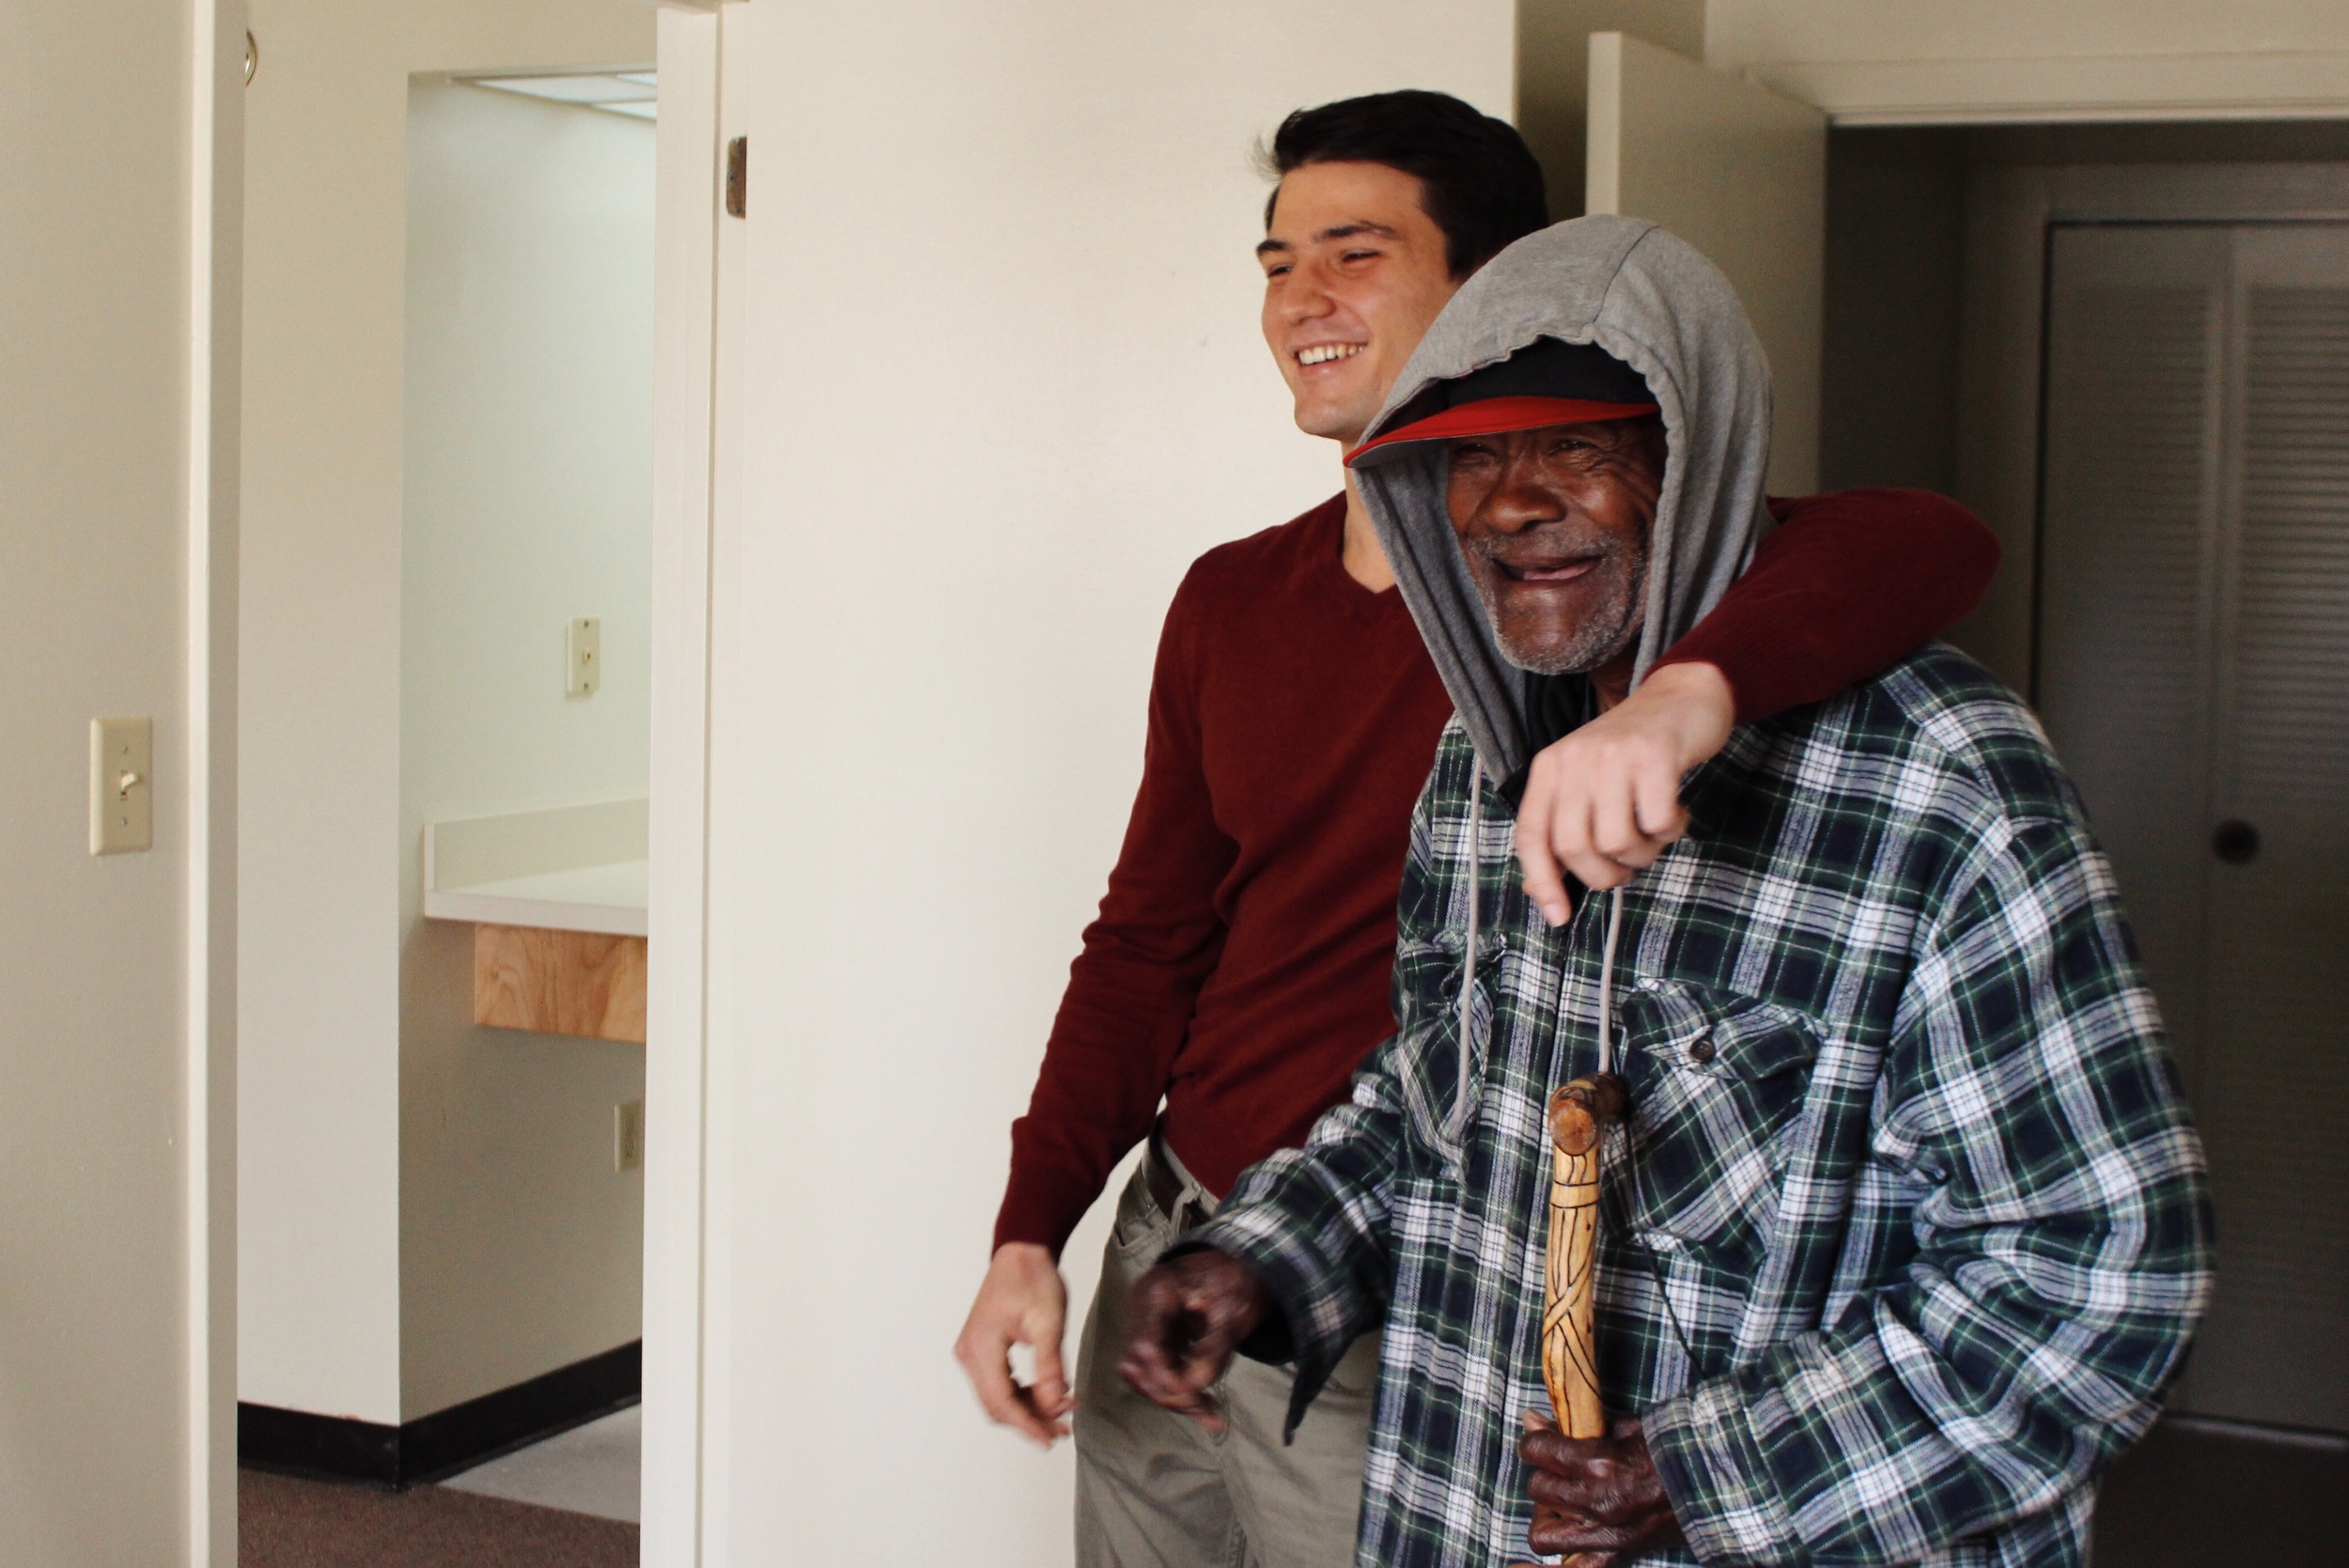 Jimmy moves into his new apartment.